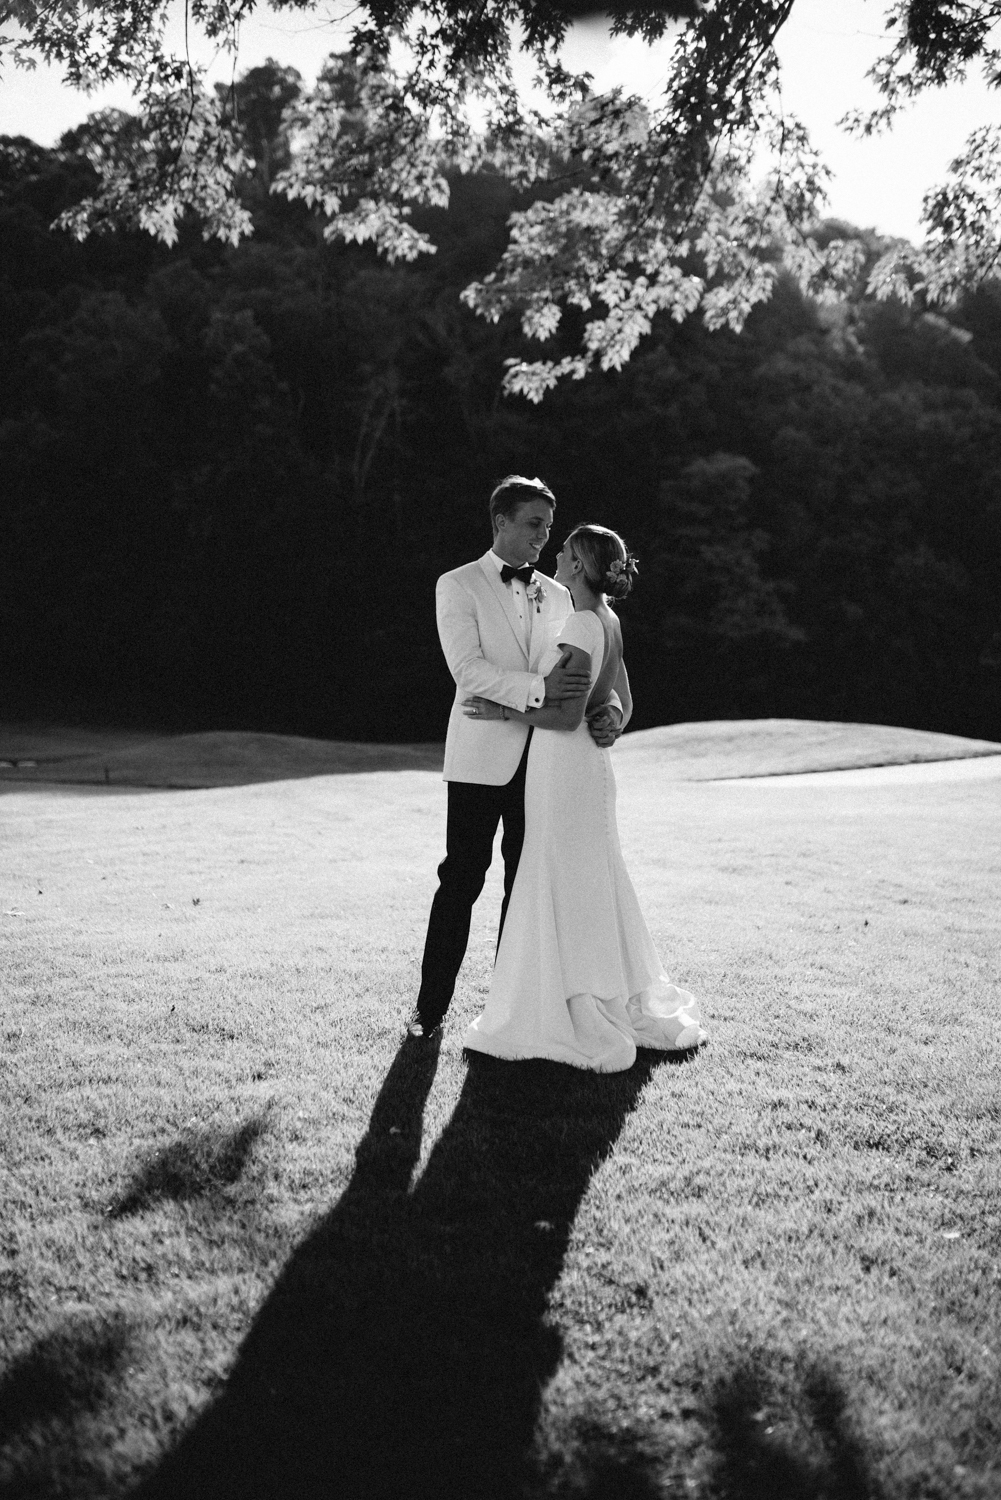 Poetry-&-motion-wedding-photography-elk-river-club-emily-&-chad20.jpg